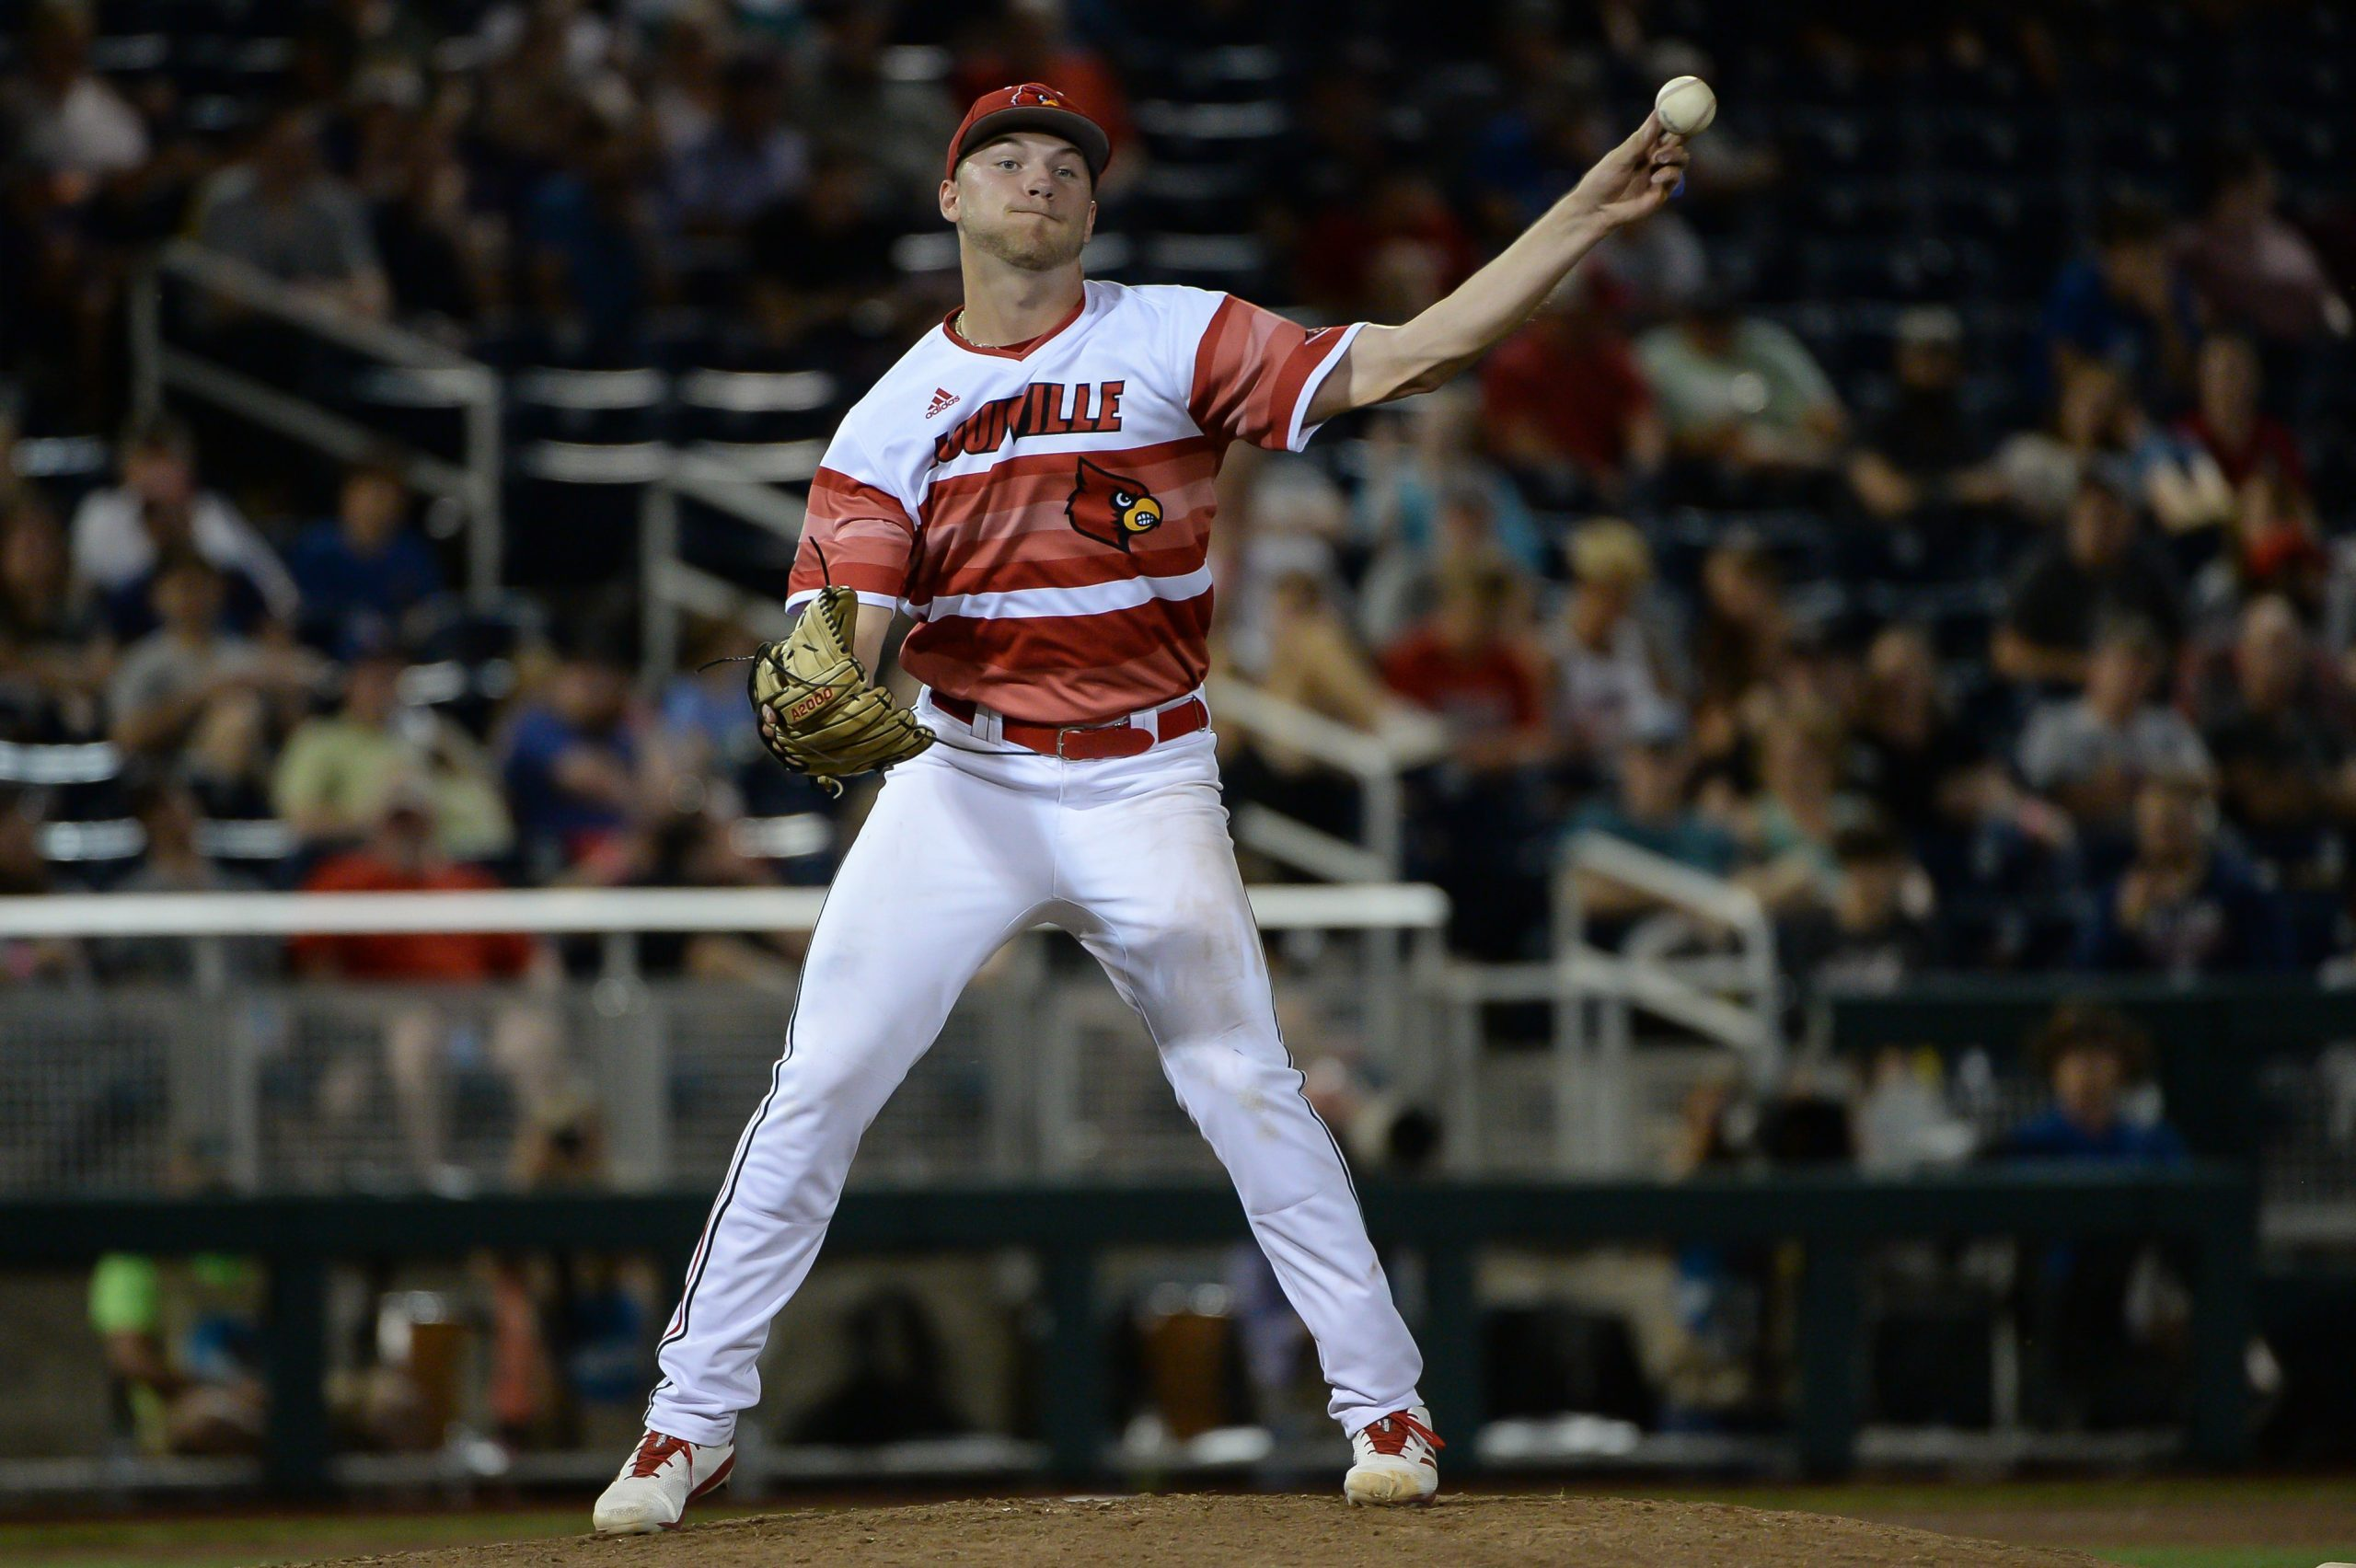 Angels Select Detmers with 10th Overall Pick